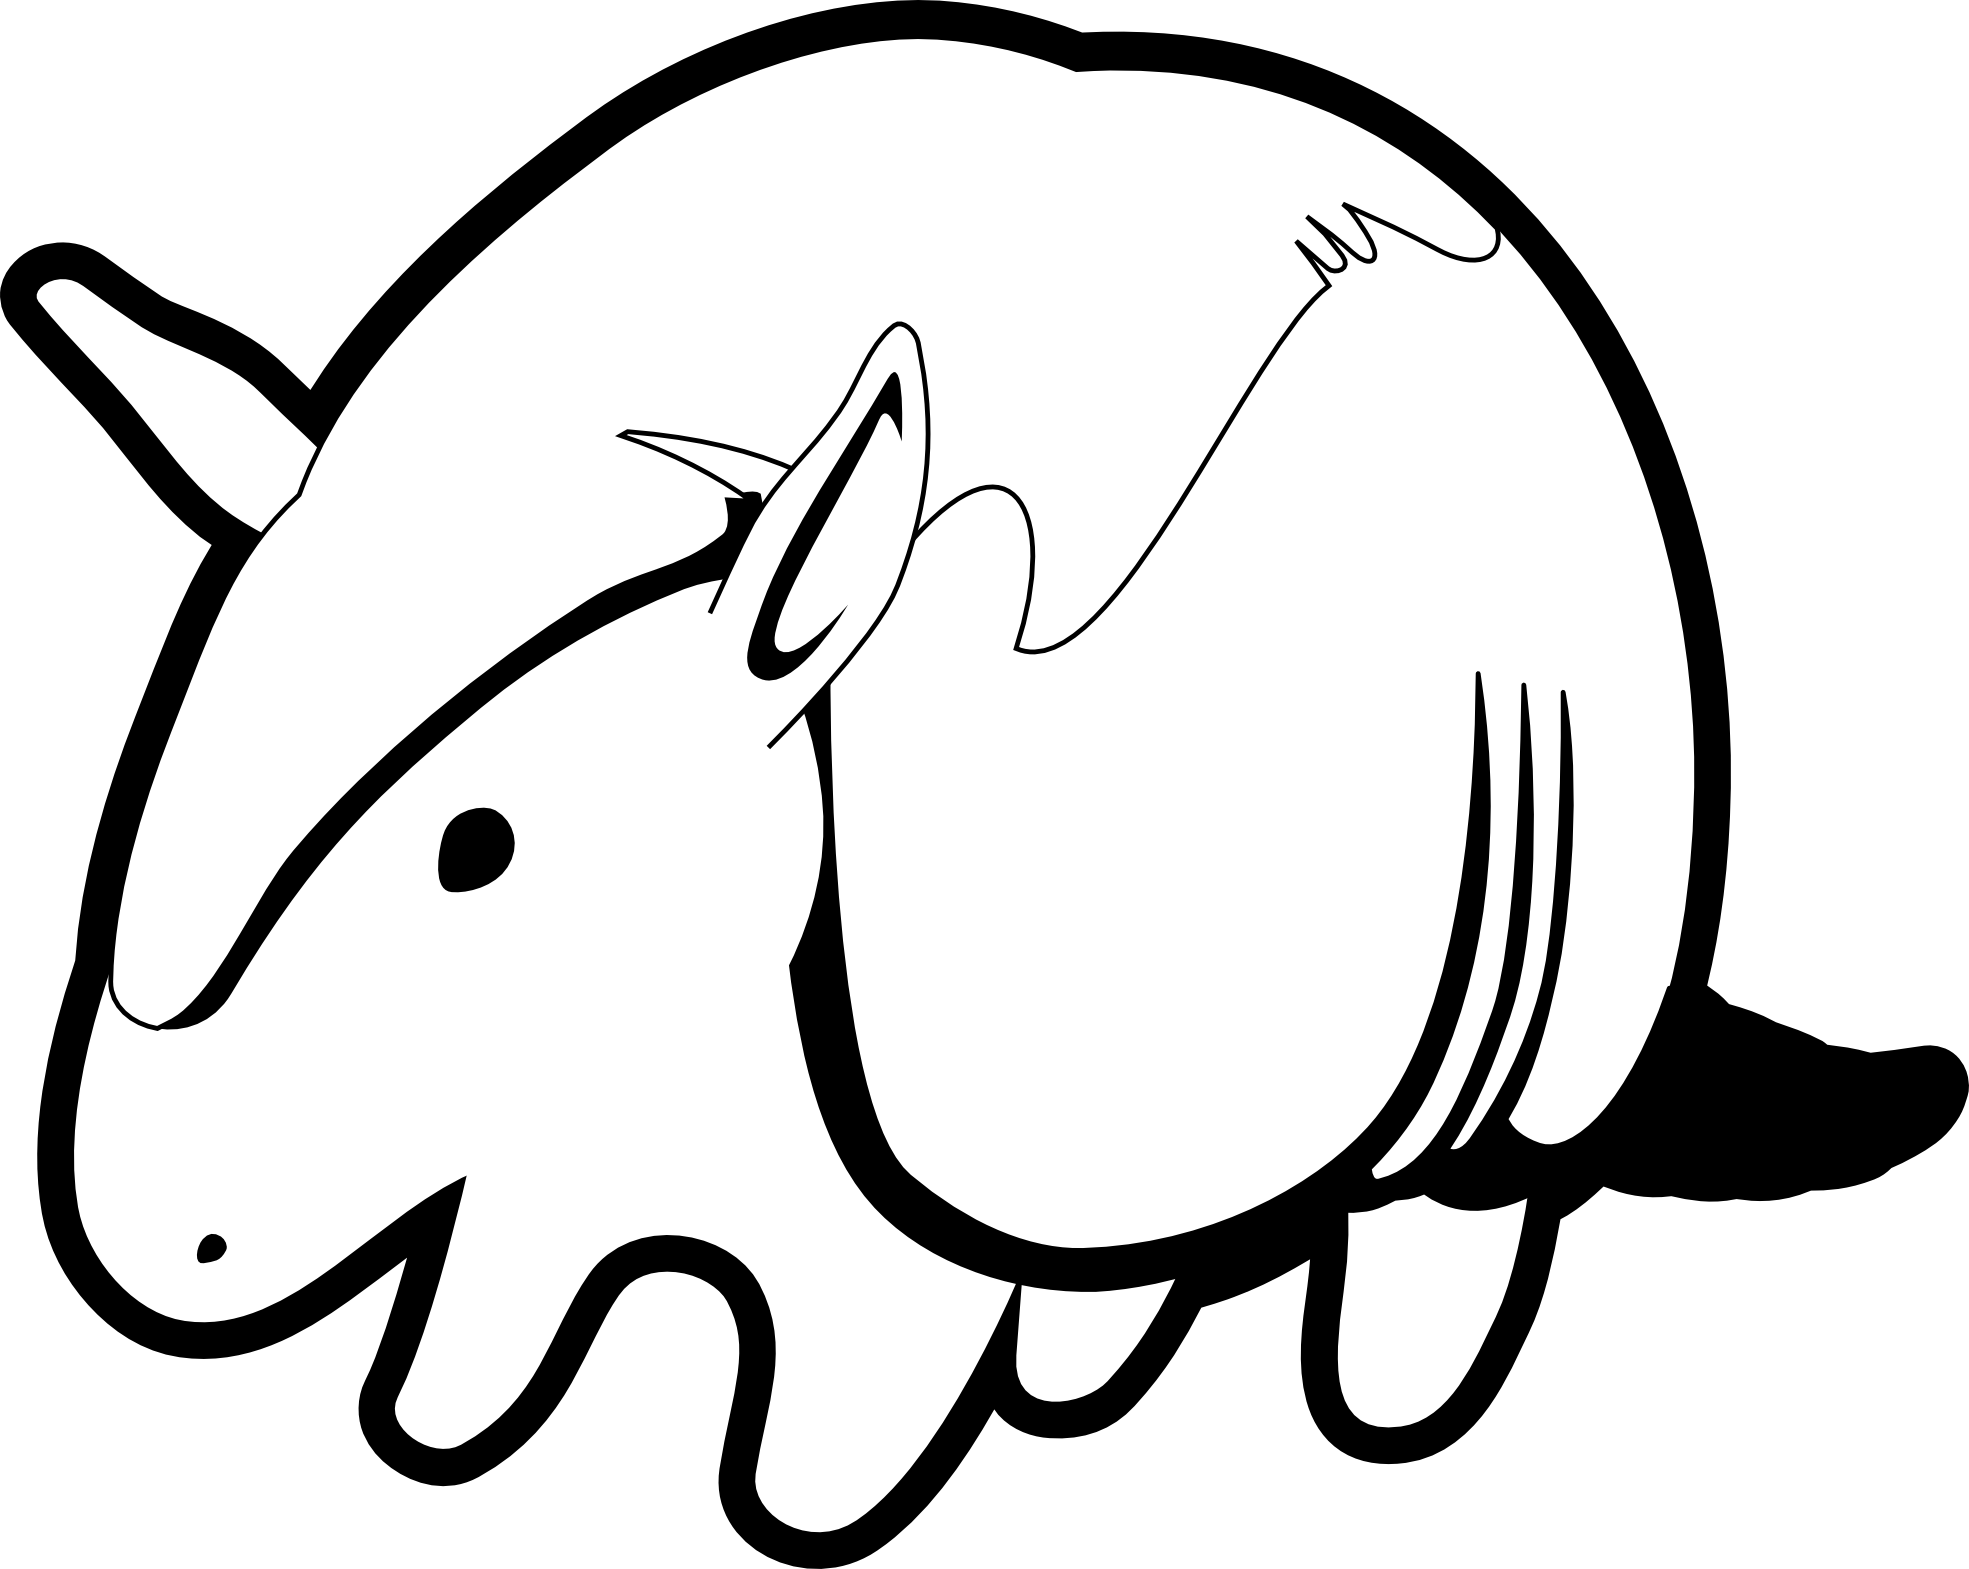 Armadillo Clip Art - Cliparts.co